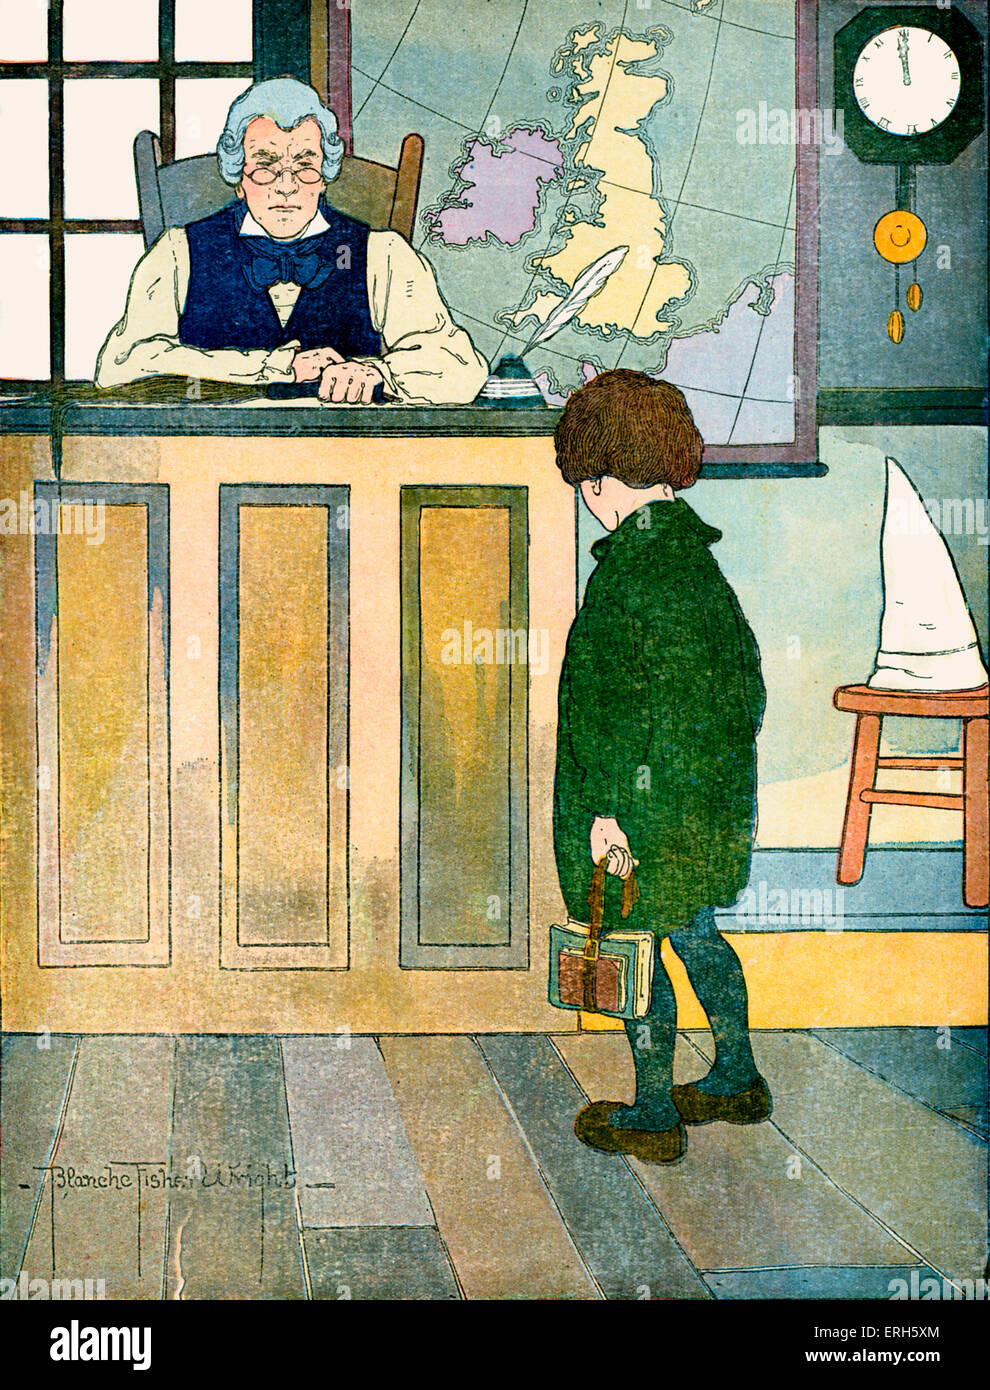 The Ten O'Clock Scholar, illustration by Blanche Fisher Wright (dates unknown), published 1916.  'A diller, a dollar, Stock Photo